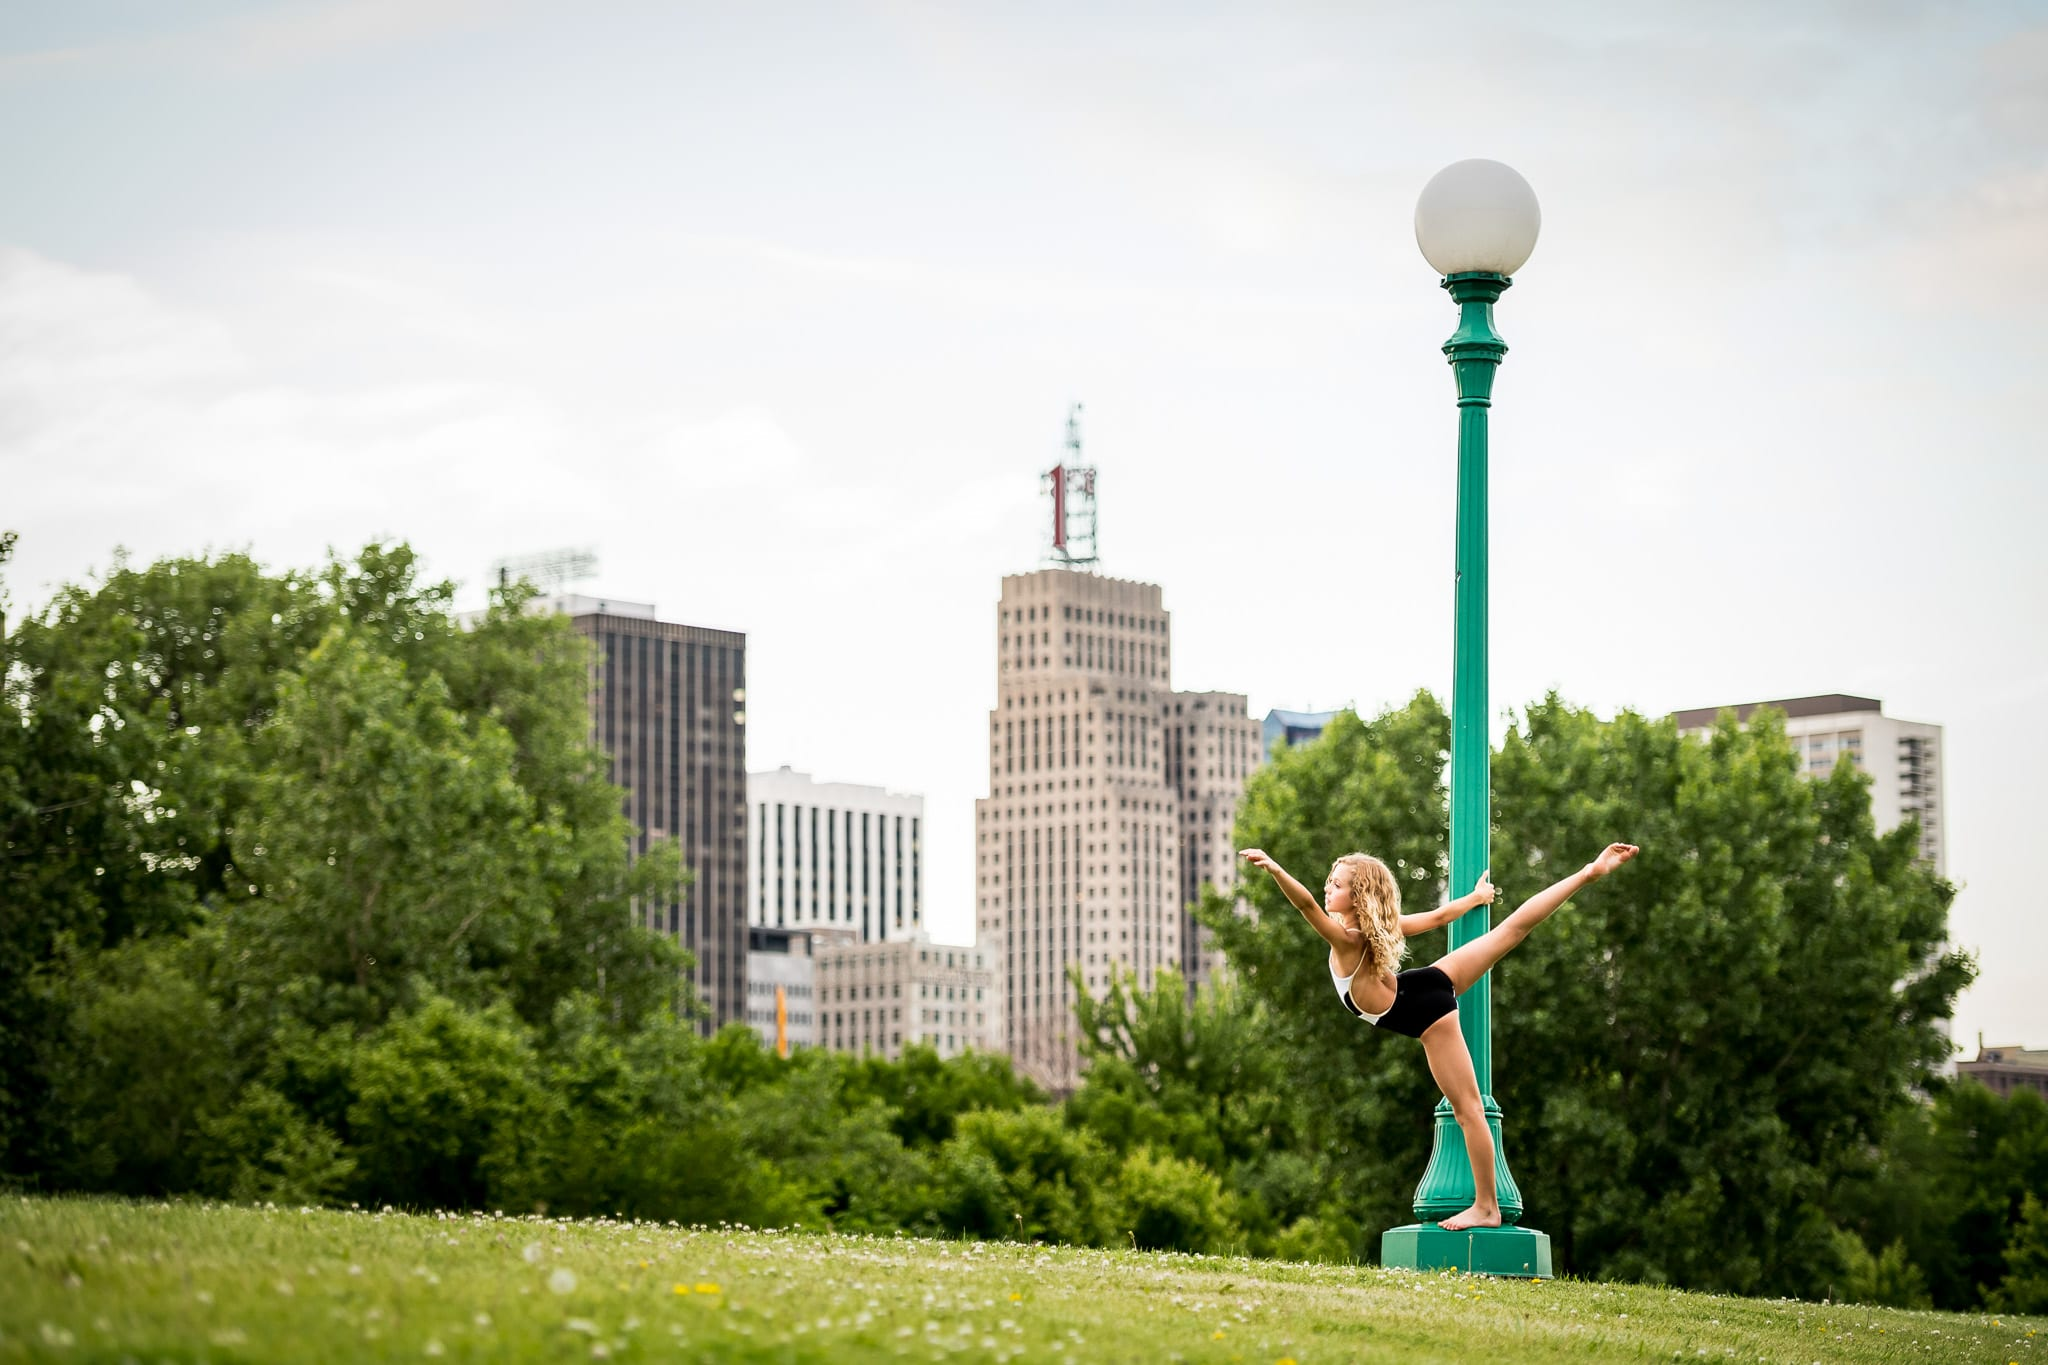 Young girl in a contemporary dance pose, hanging onto a green light post, with the downtown Saint Paul, MN skyline in the background.